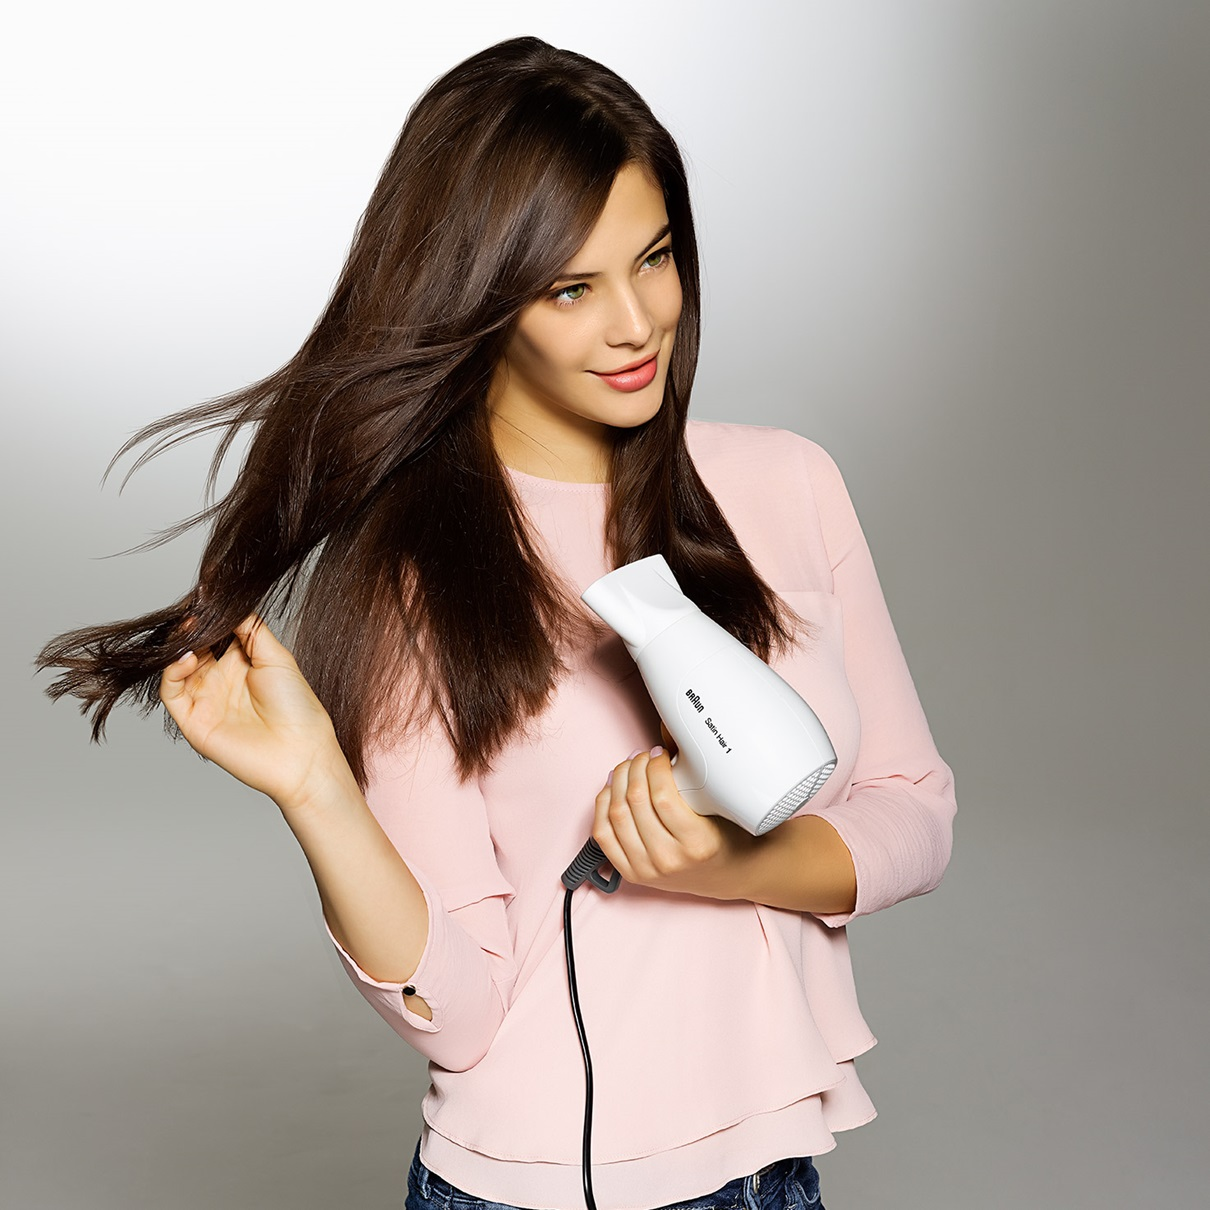 Satin Hair 1 PowerPerfection dryer HD180 in use